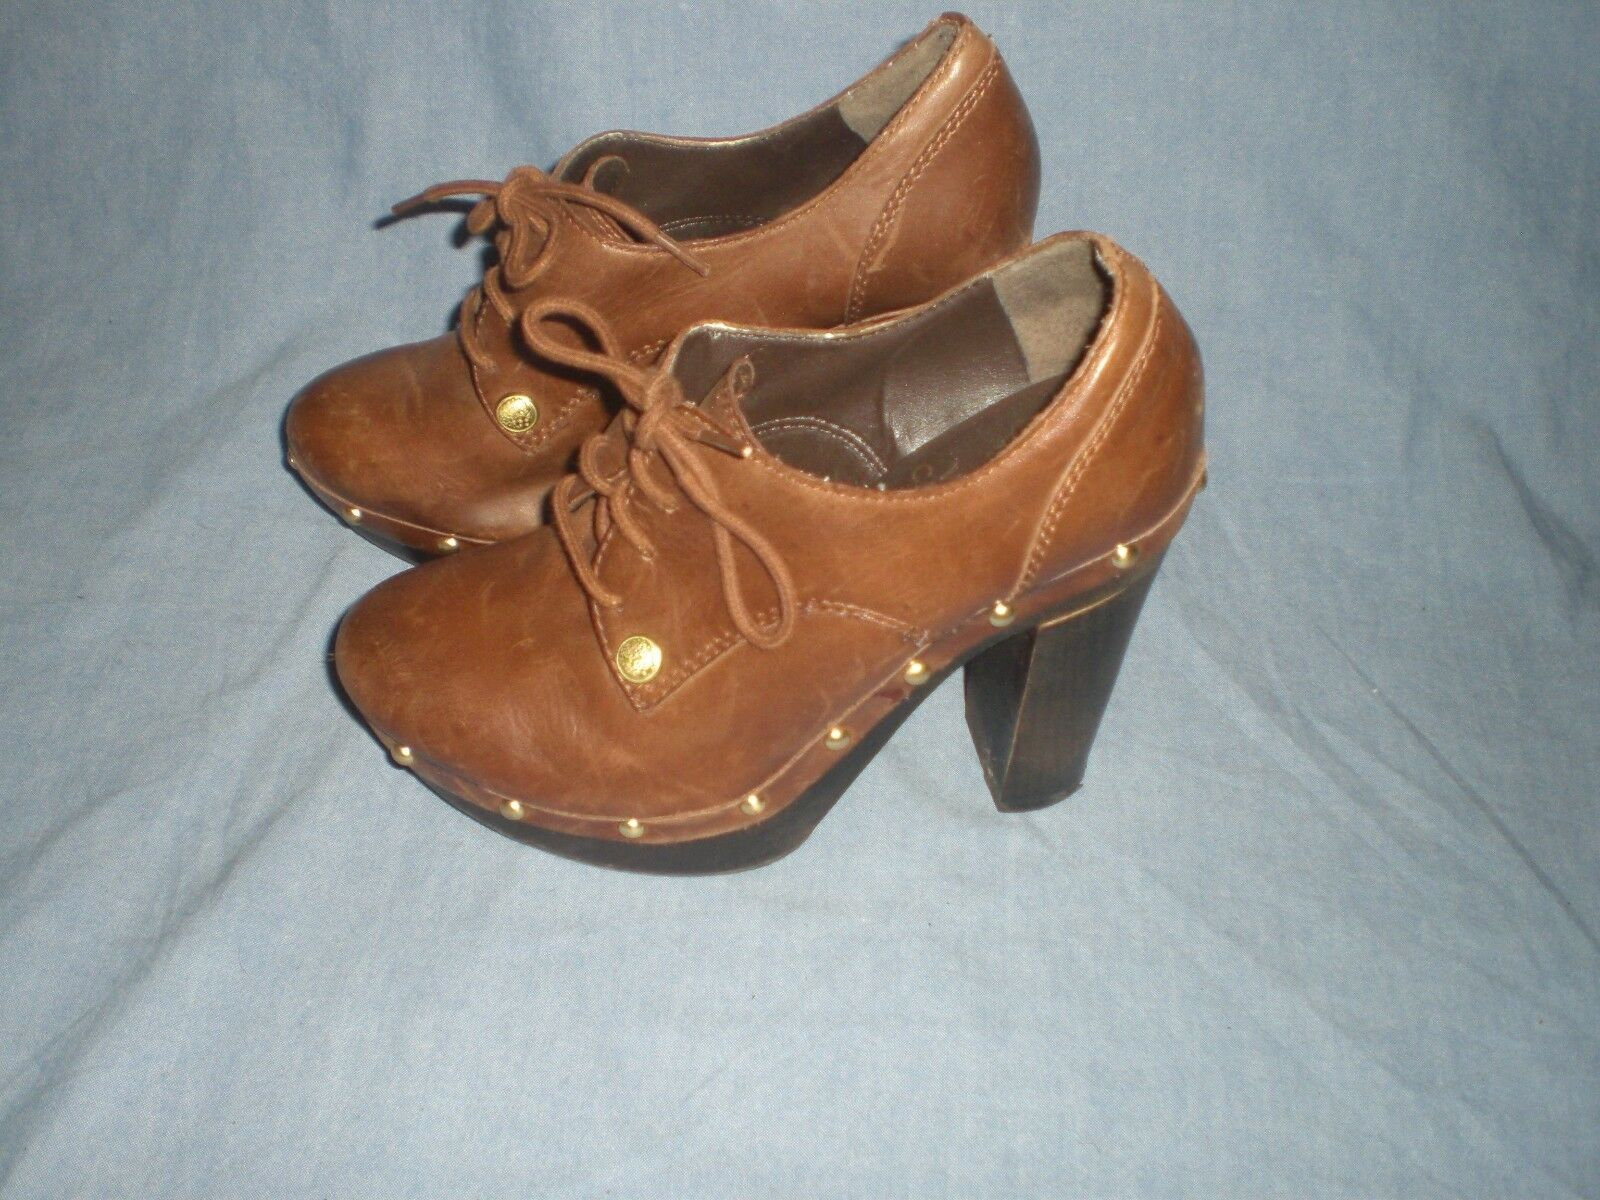 VINCE CAMUTOCANASTA BROWN LEATHER goldTONE STUDS LACES UP ANKLE BOOTS6 B